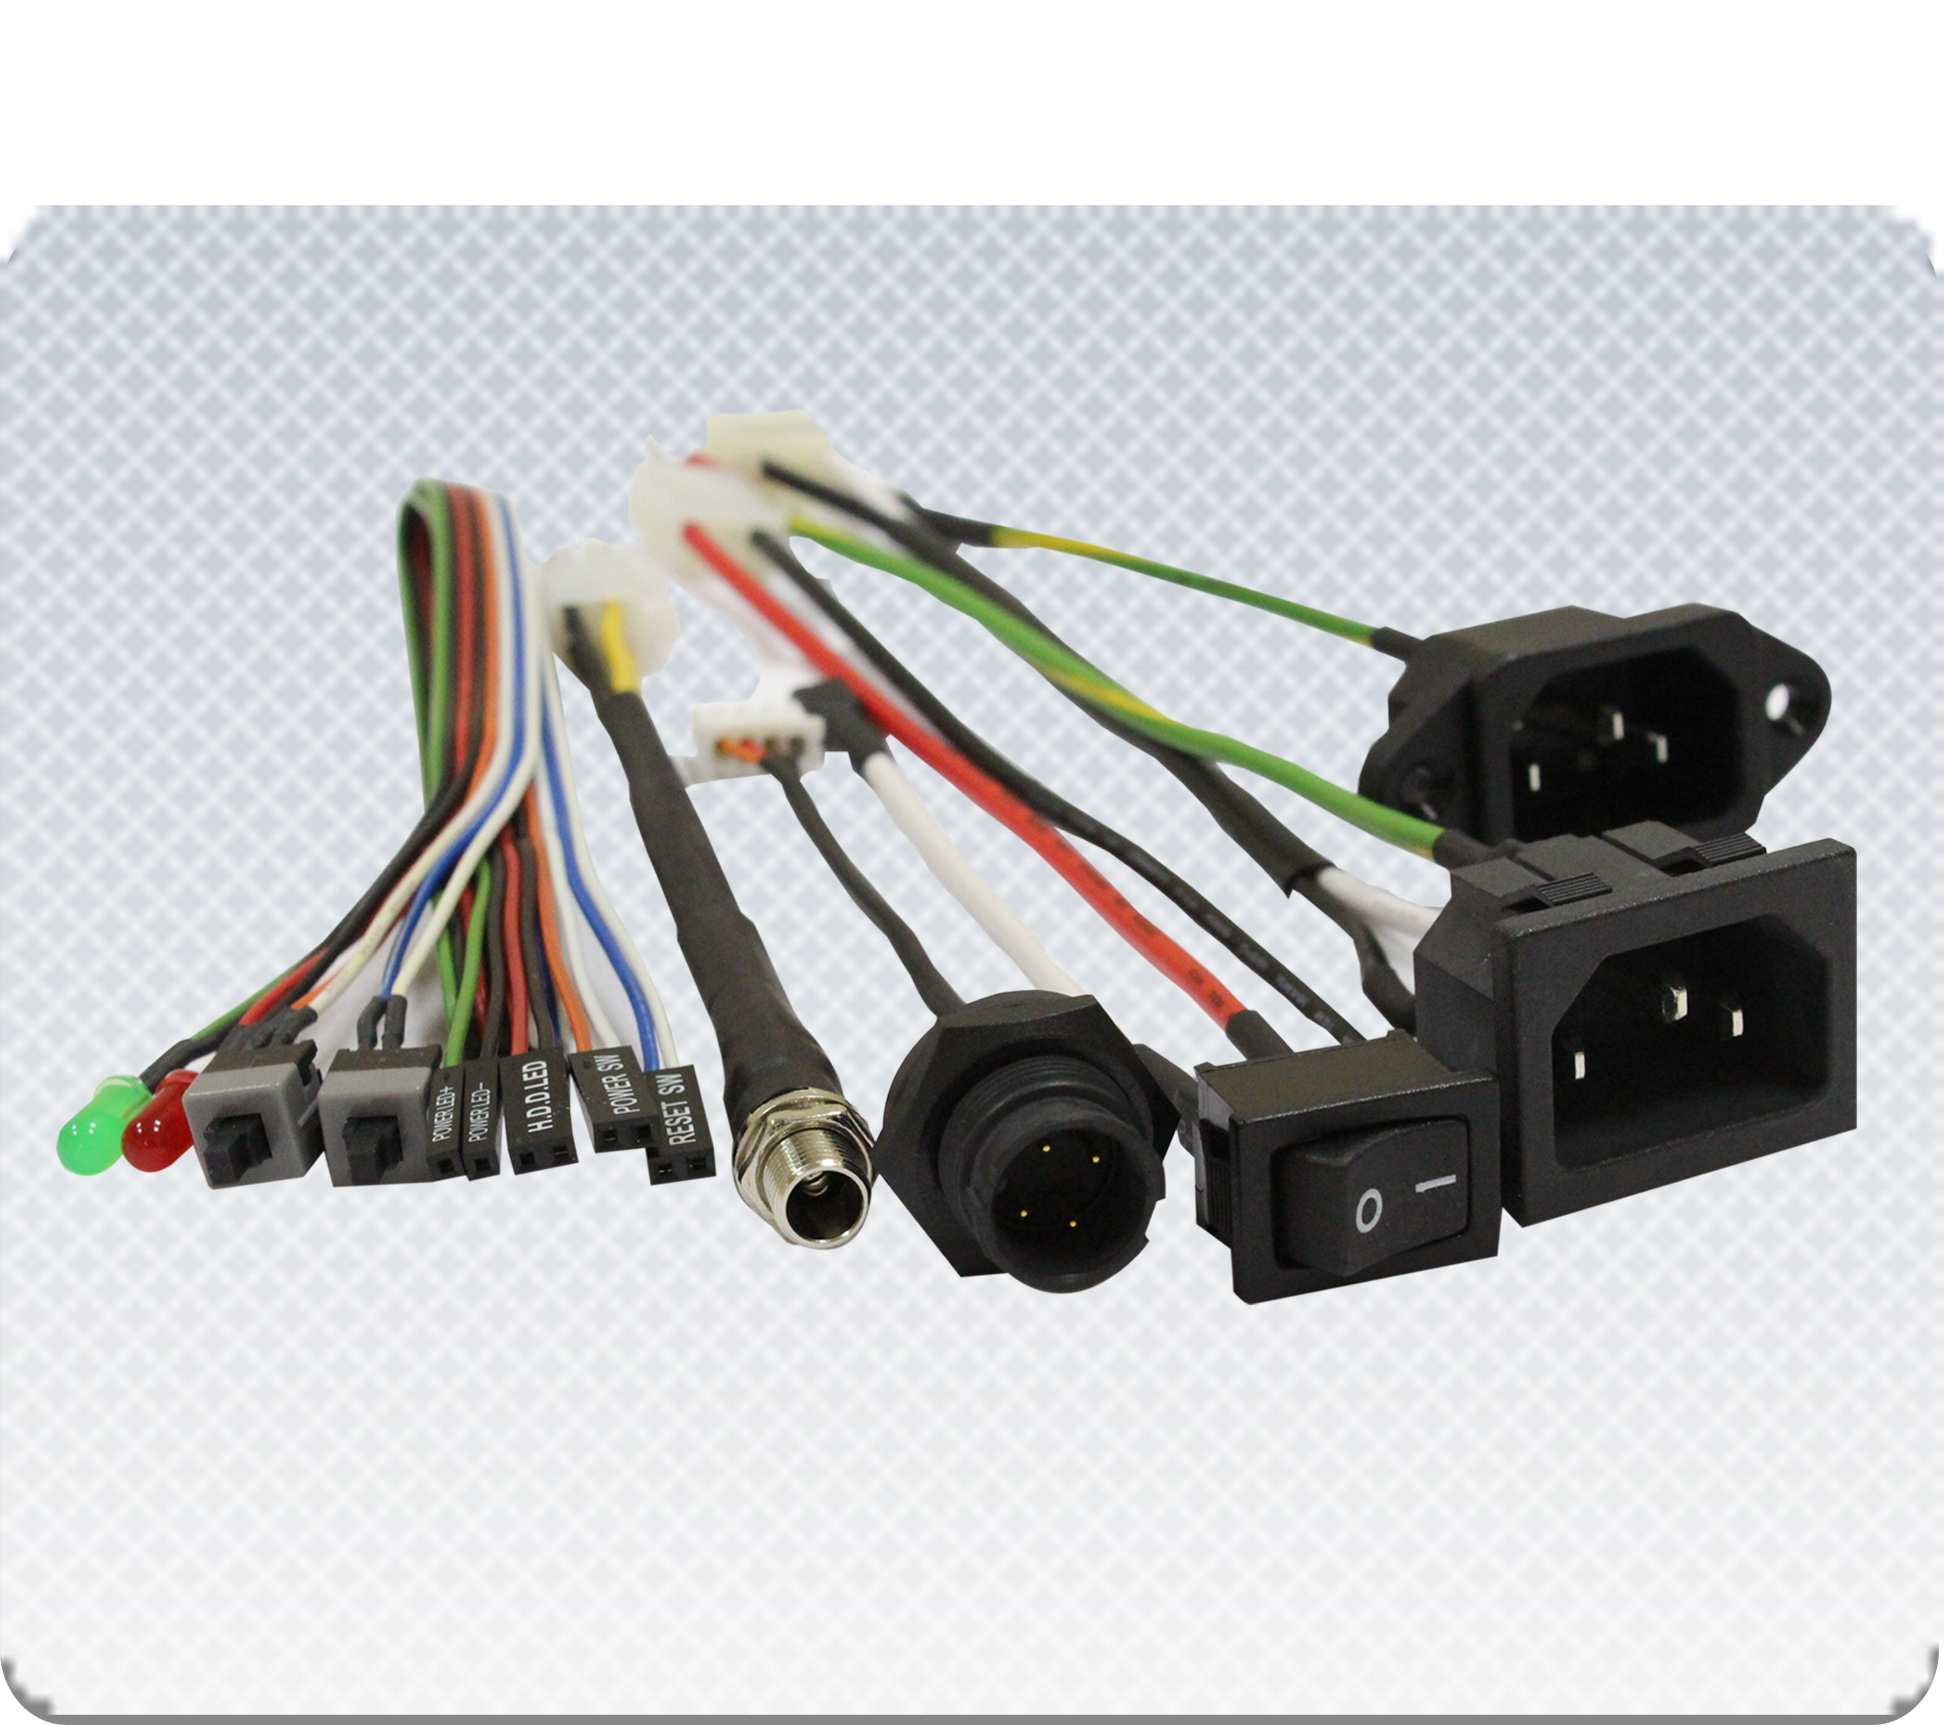 ip camera cable ip camera cable manufacturer supplier rh grandprotech com Wiring Harness Diagram Engine Wiring Harness